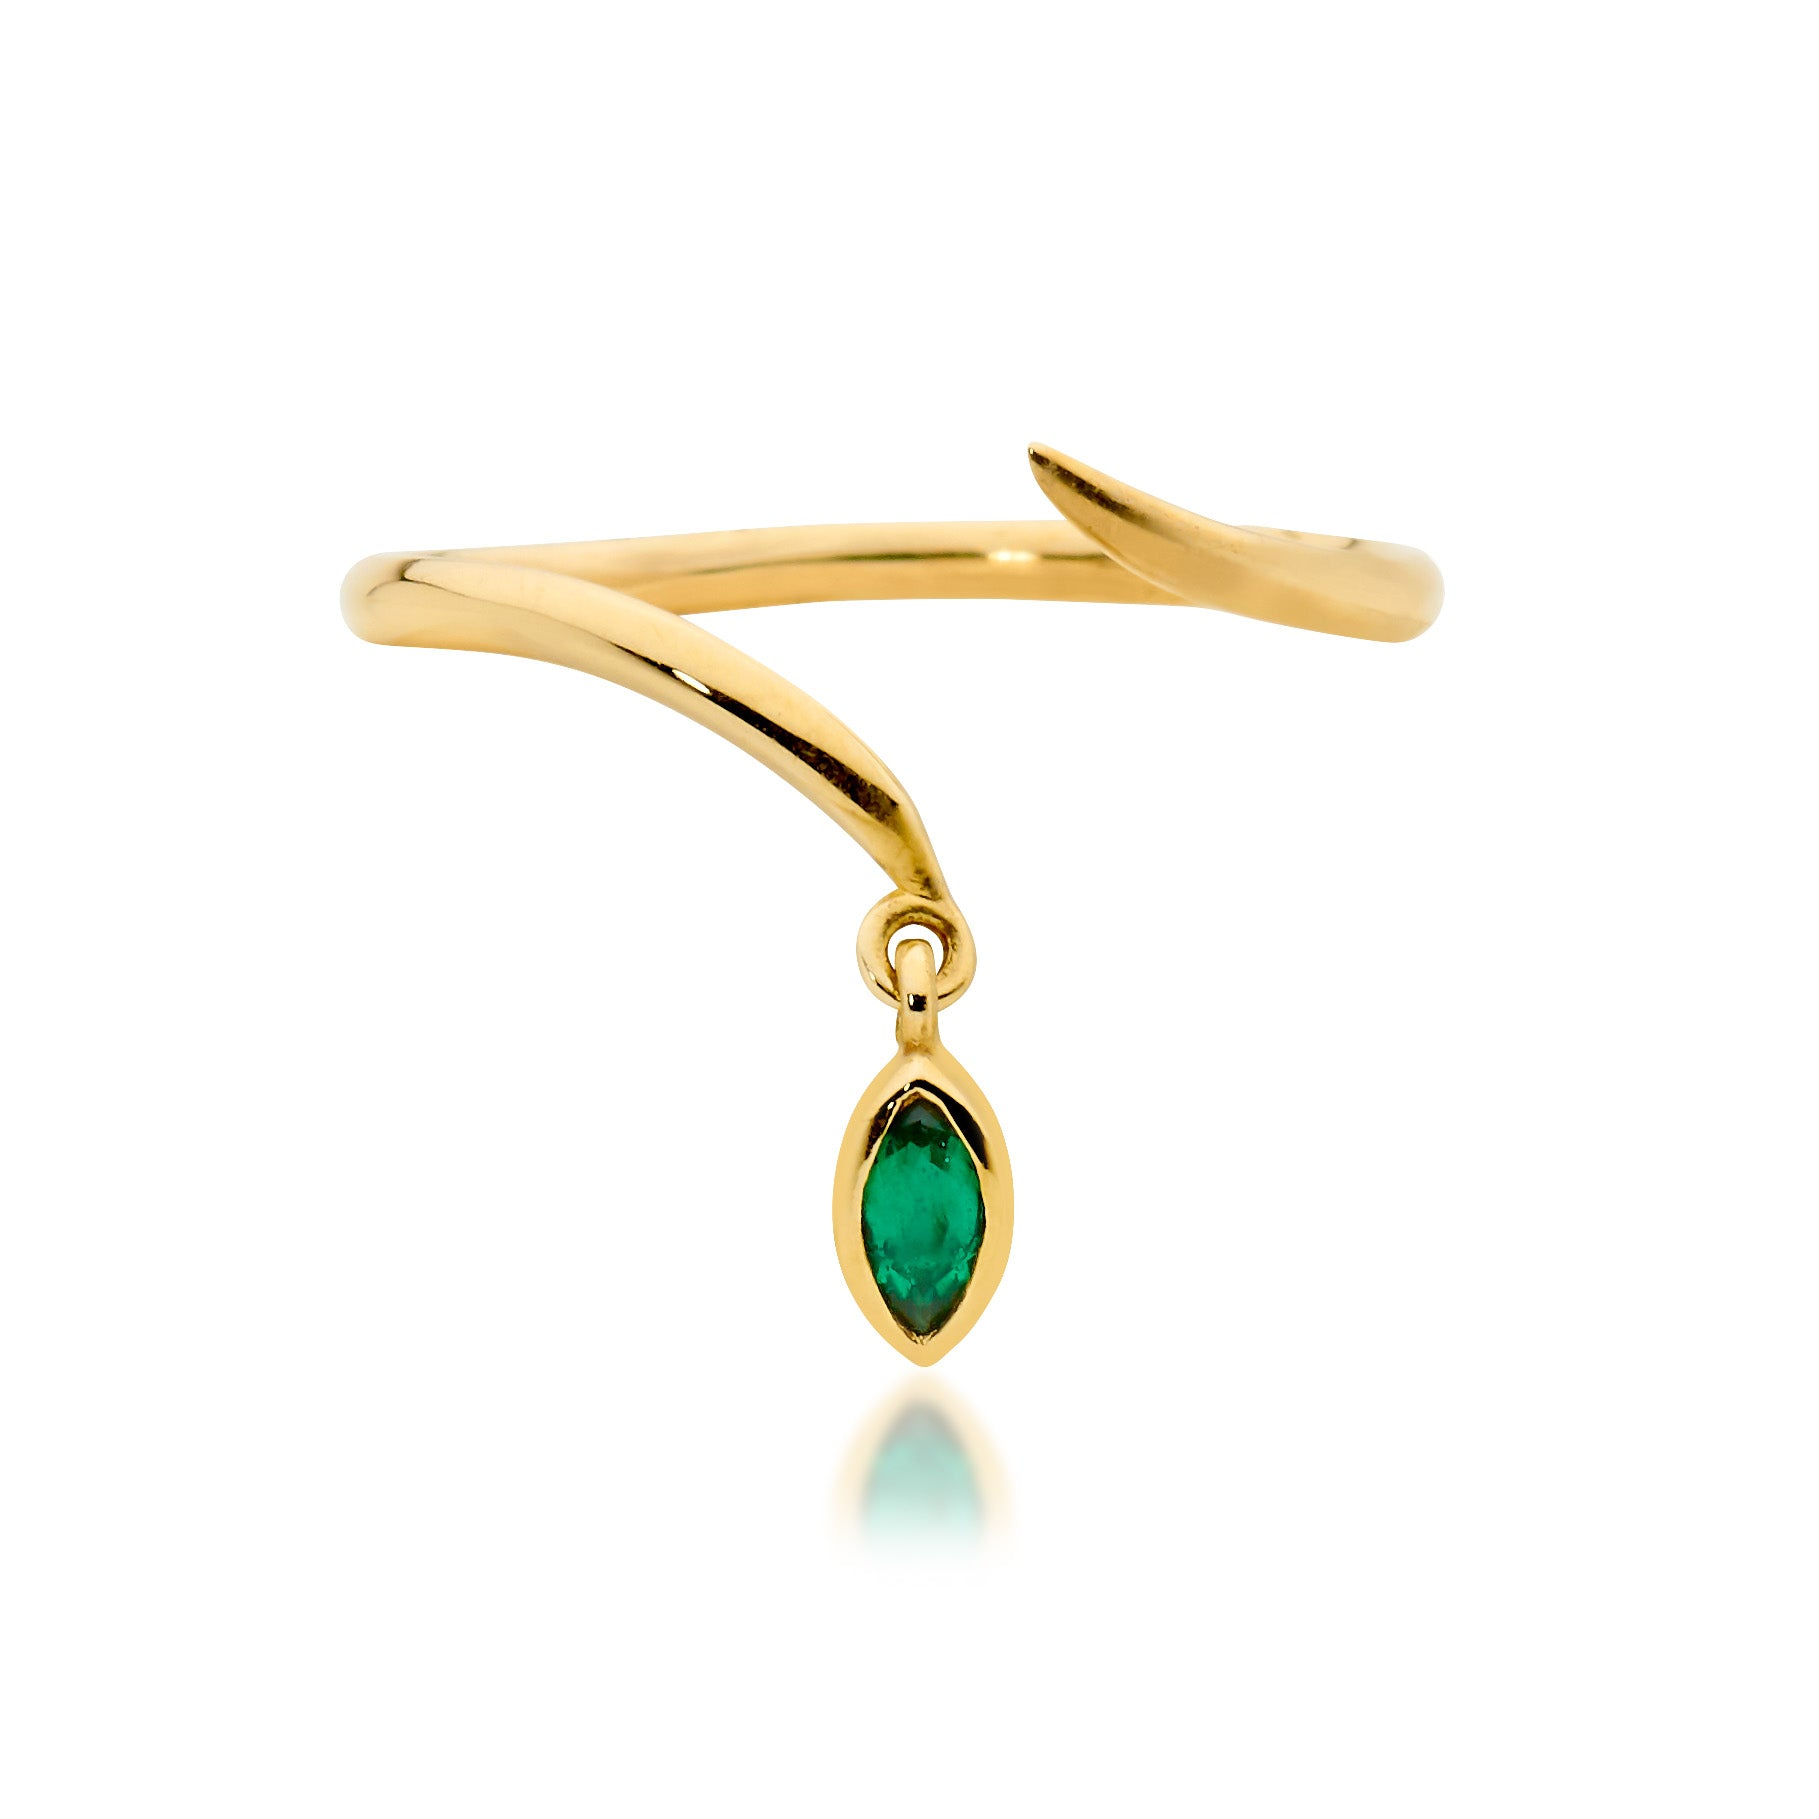 tiny emerald drop ring, delicate ring, serafin jewellery